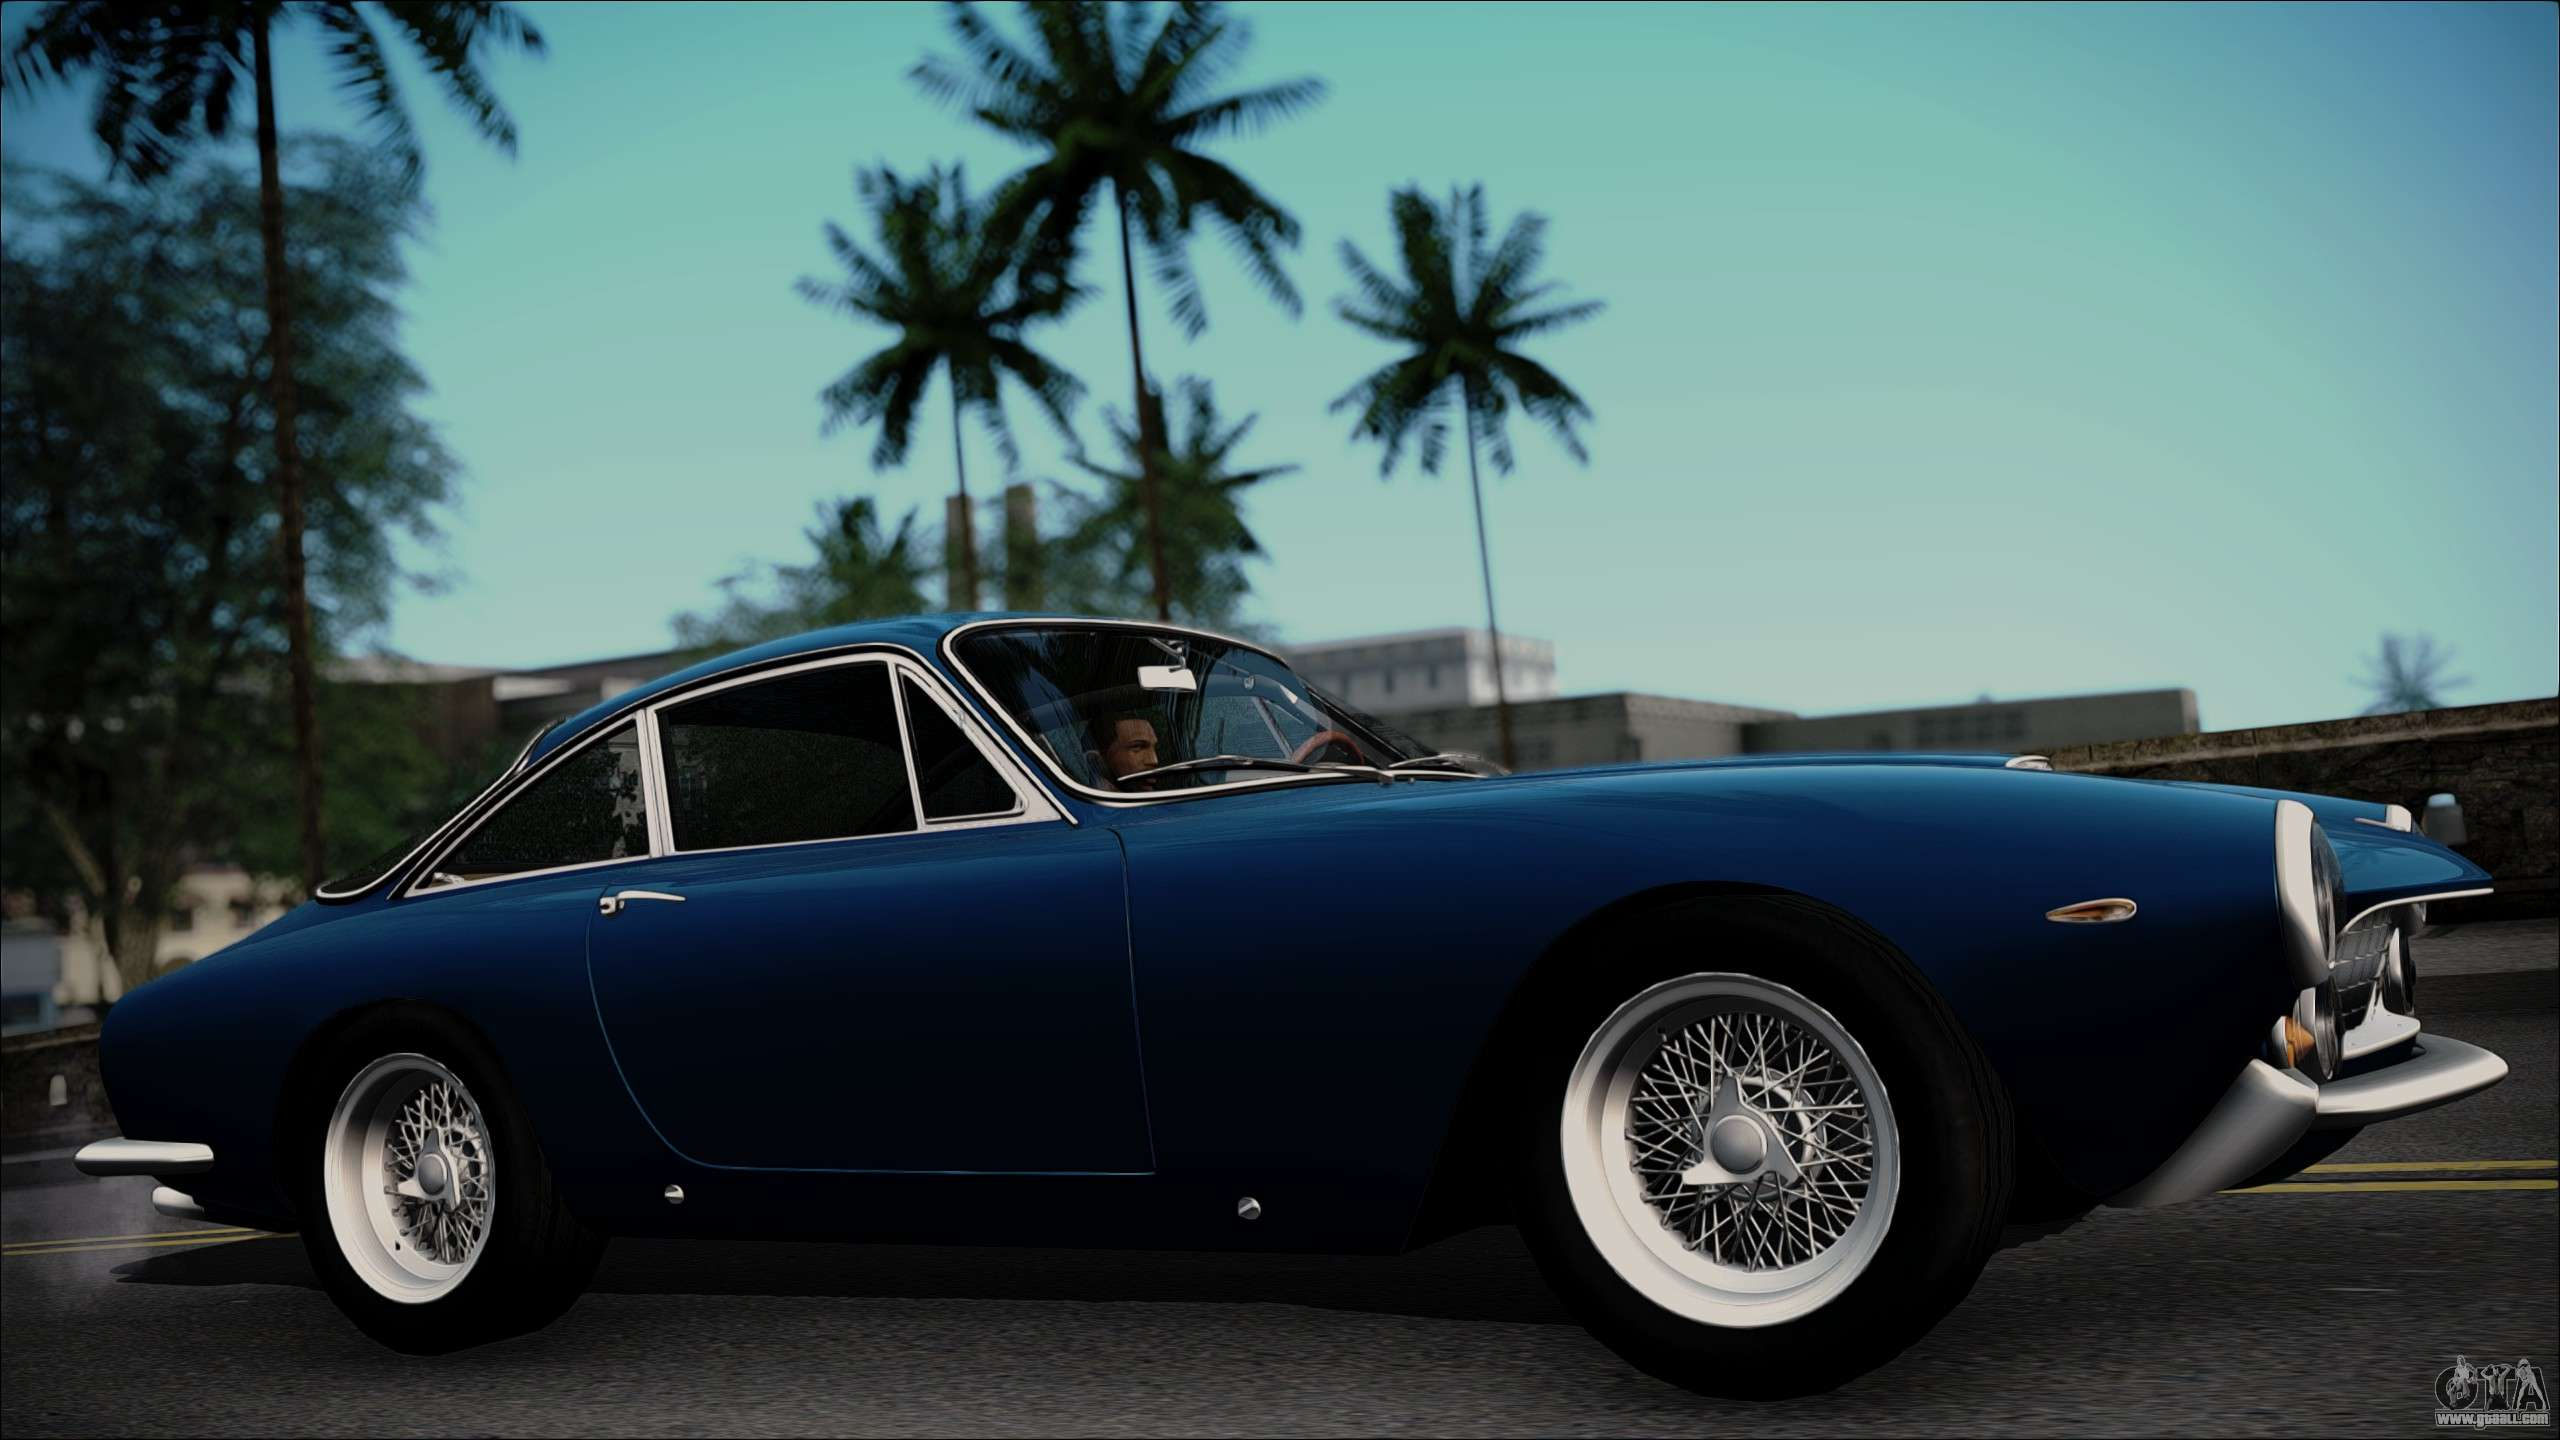 Ferrari 250 GT Berlinetta Lusso 1963 [ImVehFt] for GTA San Andreas